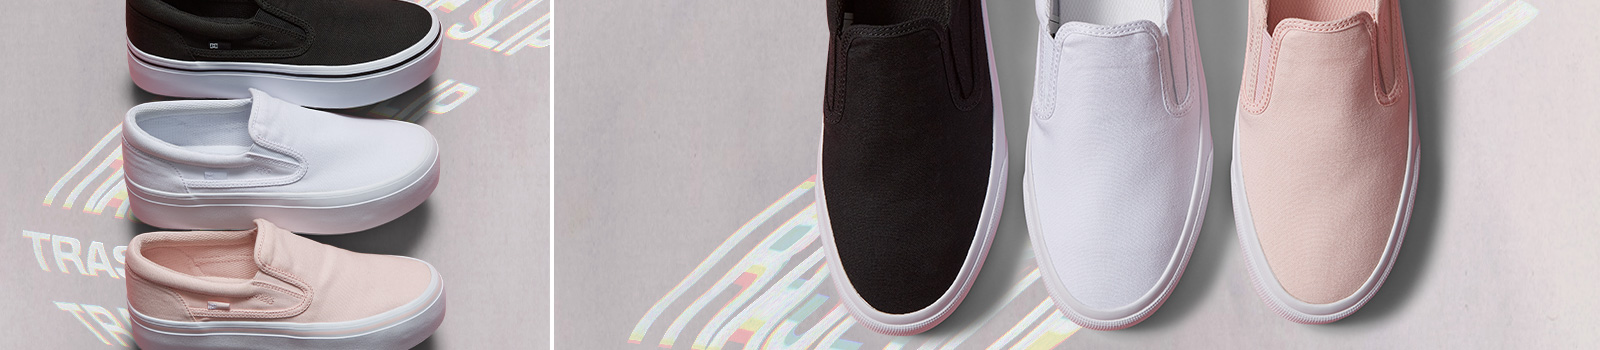 Womens Fashion Trends by DC Shoes